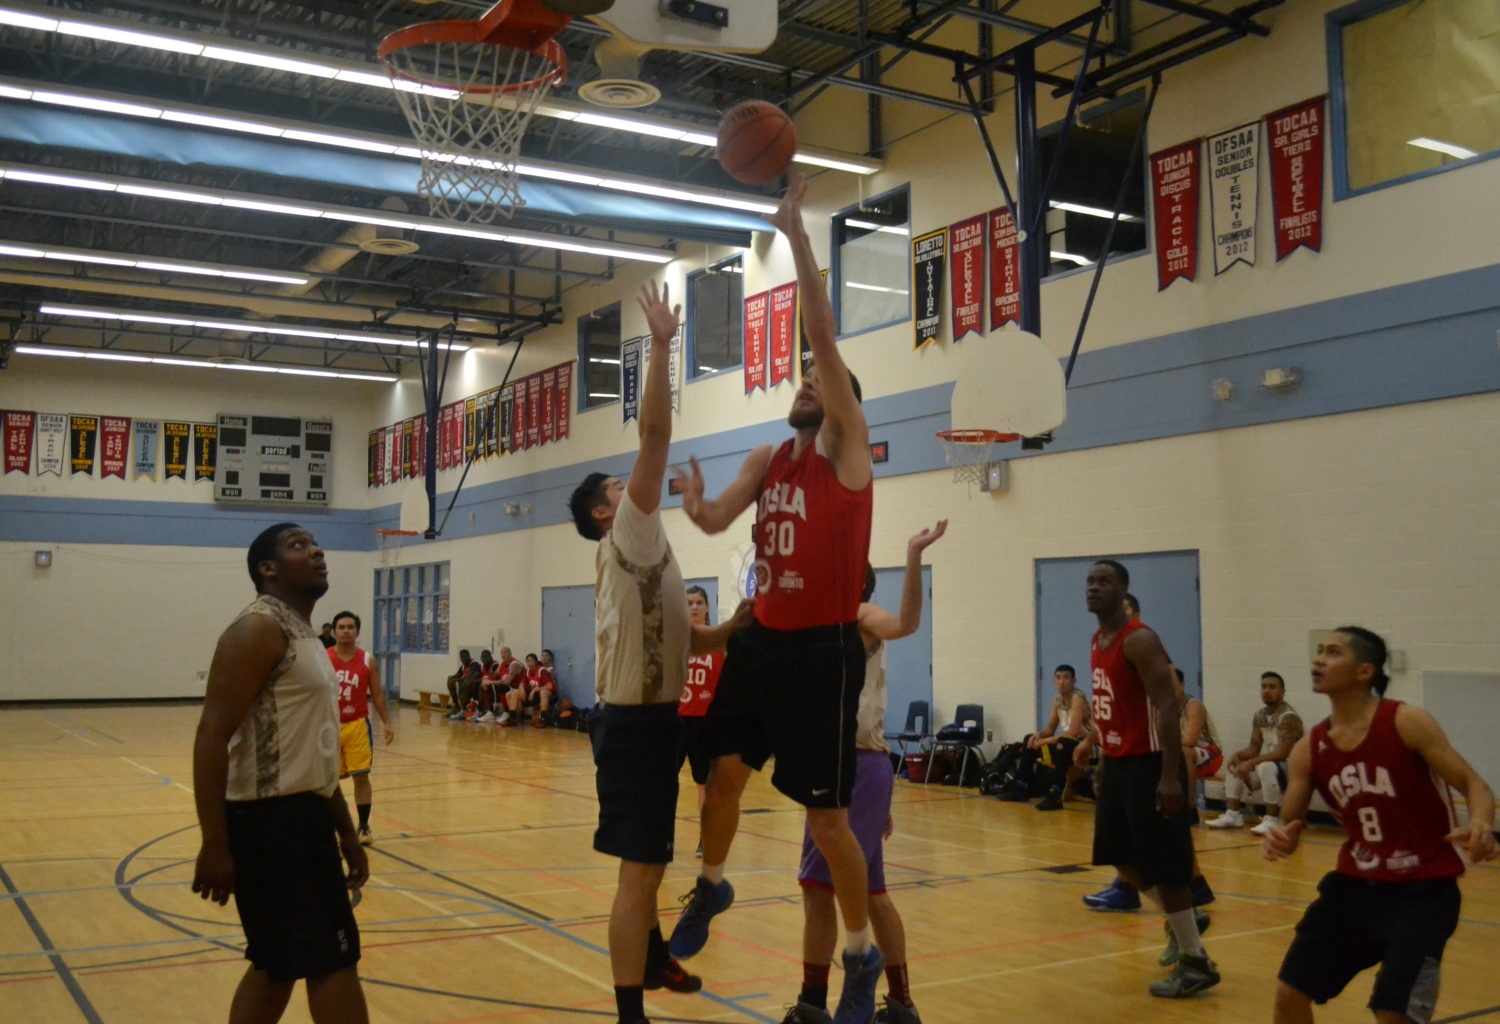 qsla coed basketball league Toronto 2k Raptors